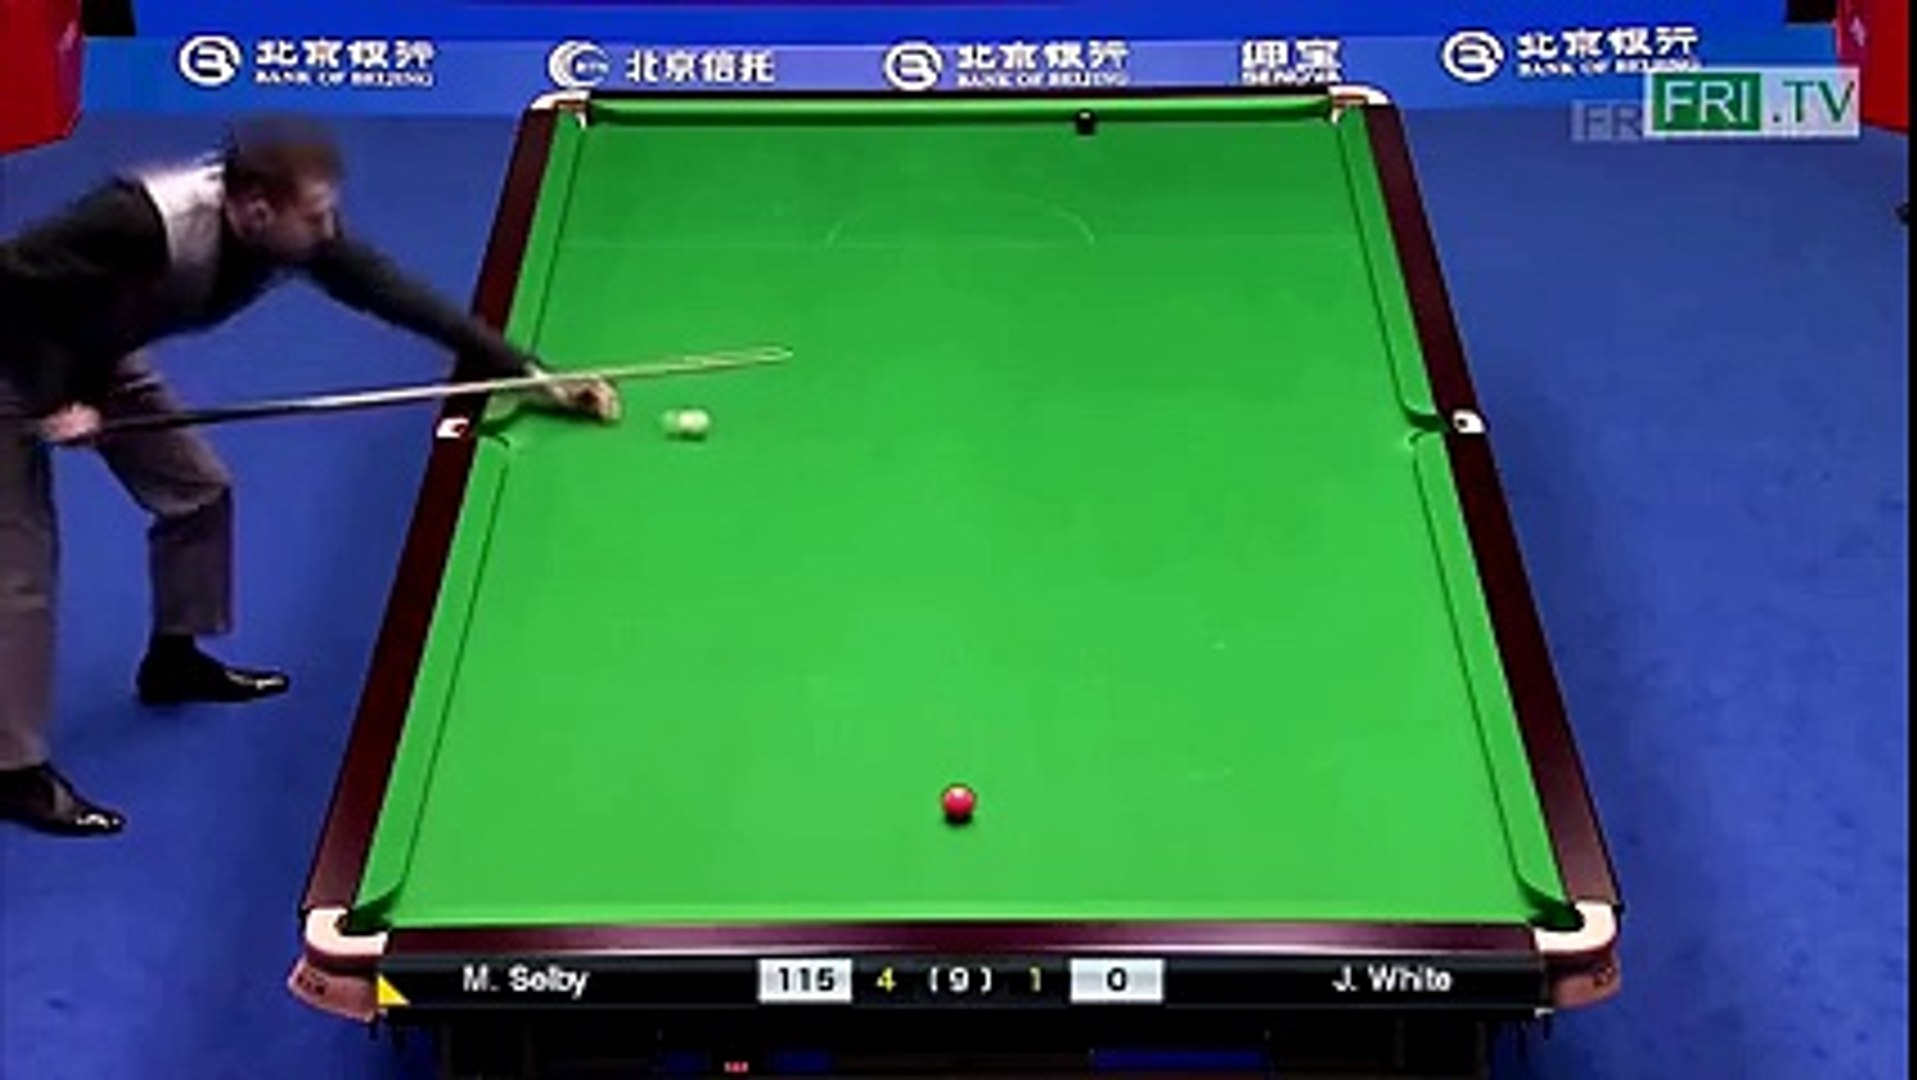 Magical Snooker Shots - Best shots